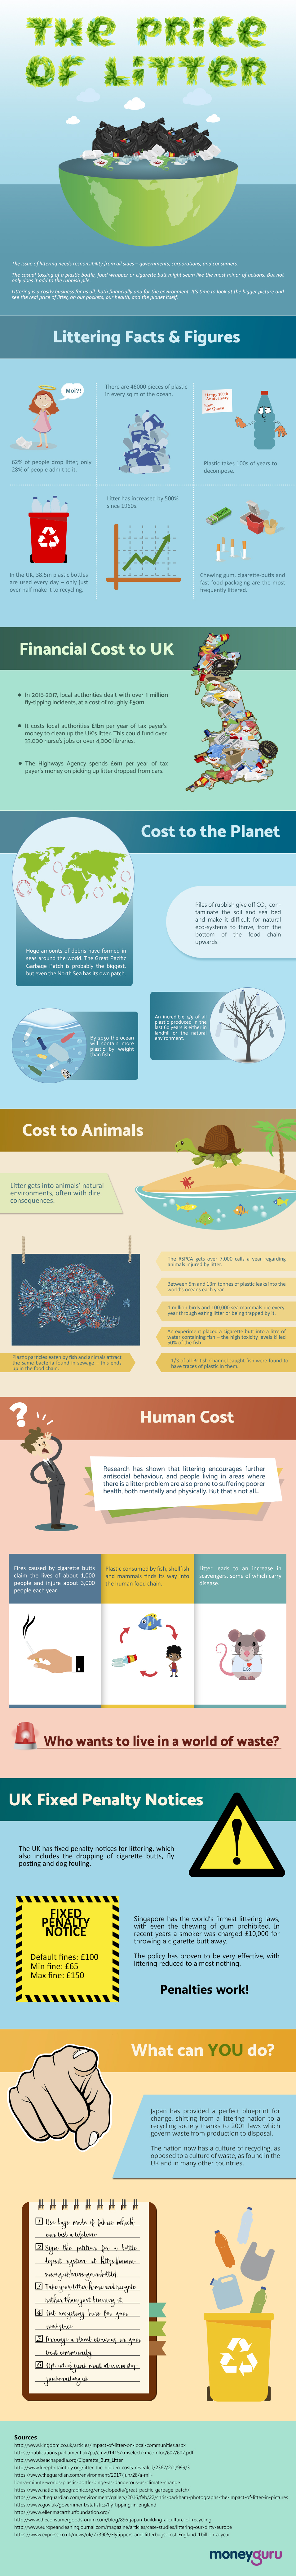 Price of Litter Infographic